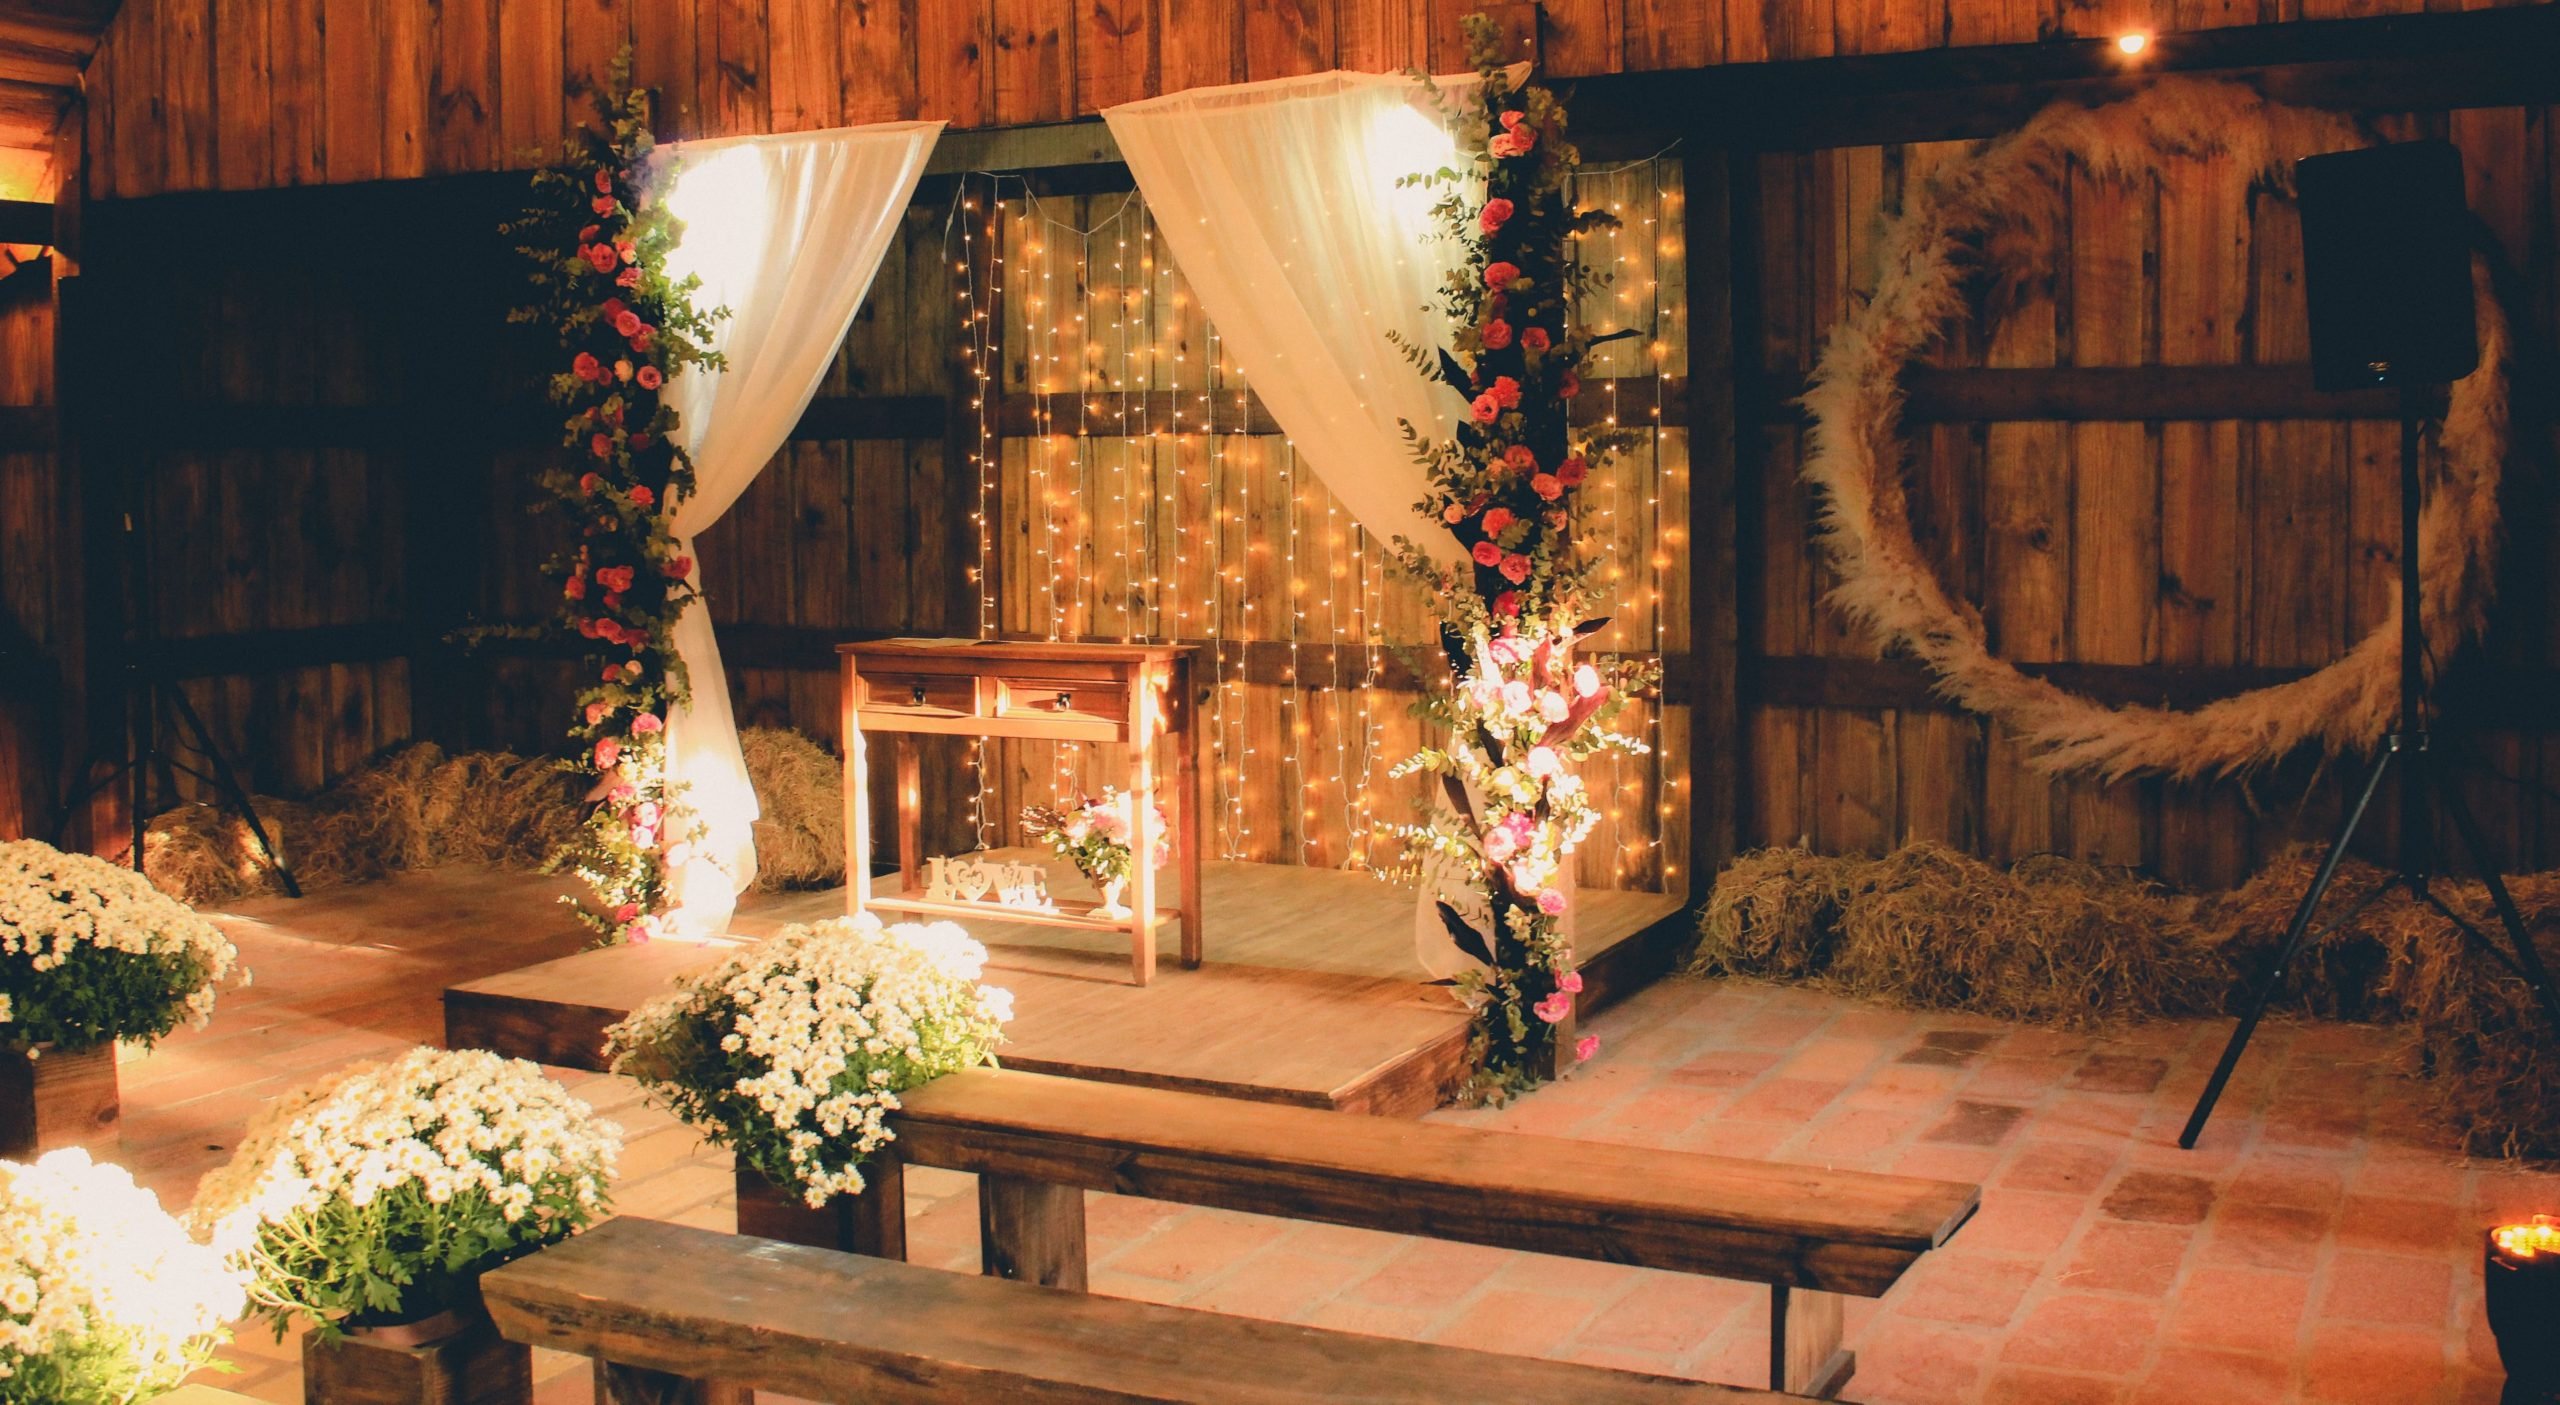 6 Amazing Wedding Backdrop Ideas for the Ceremony